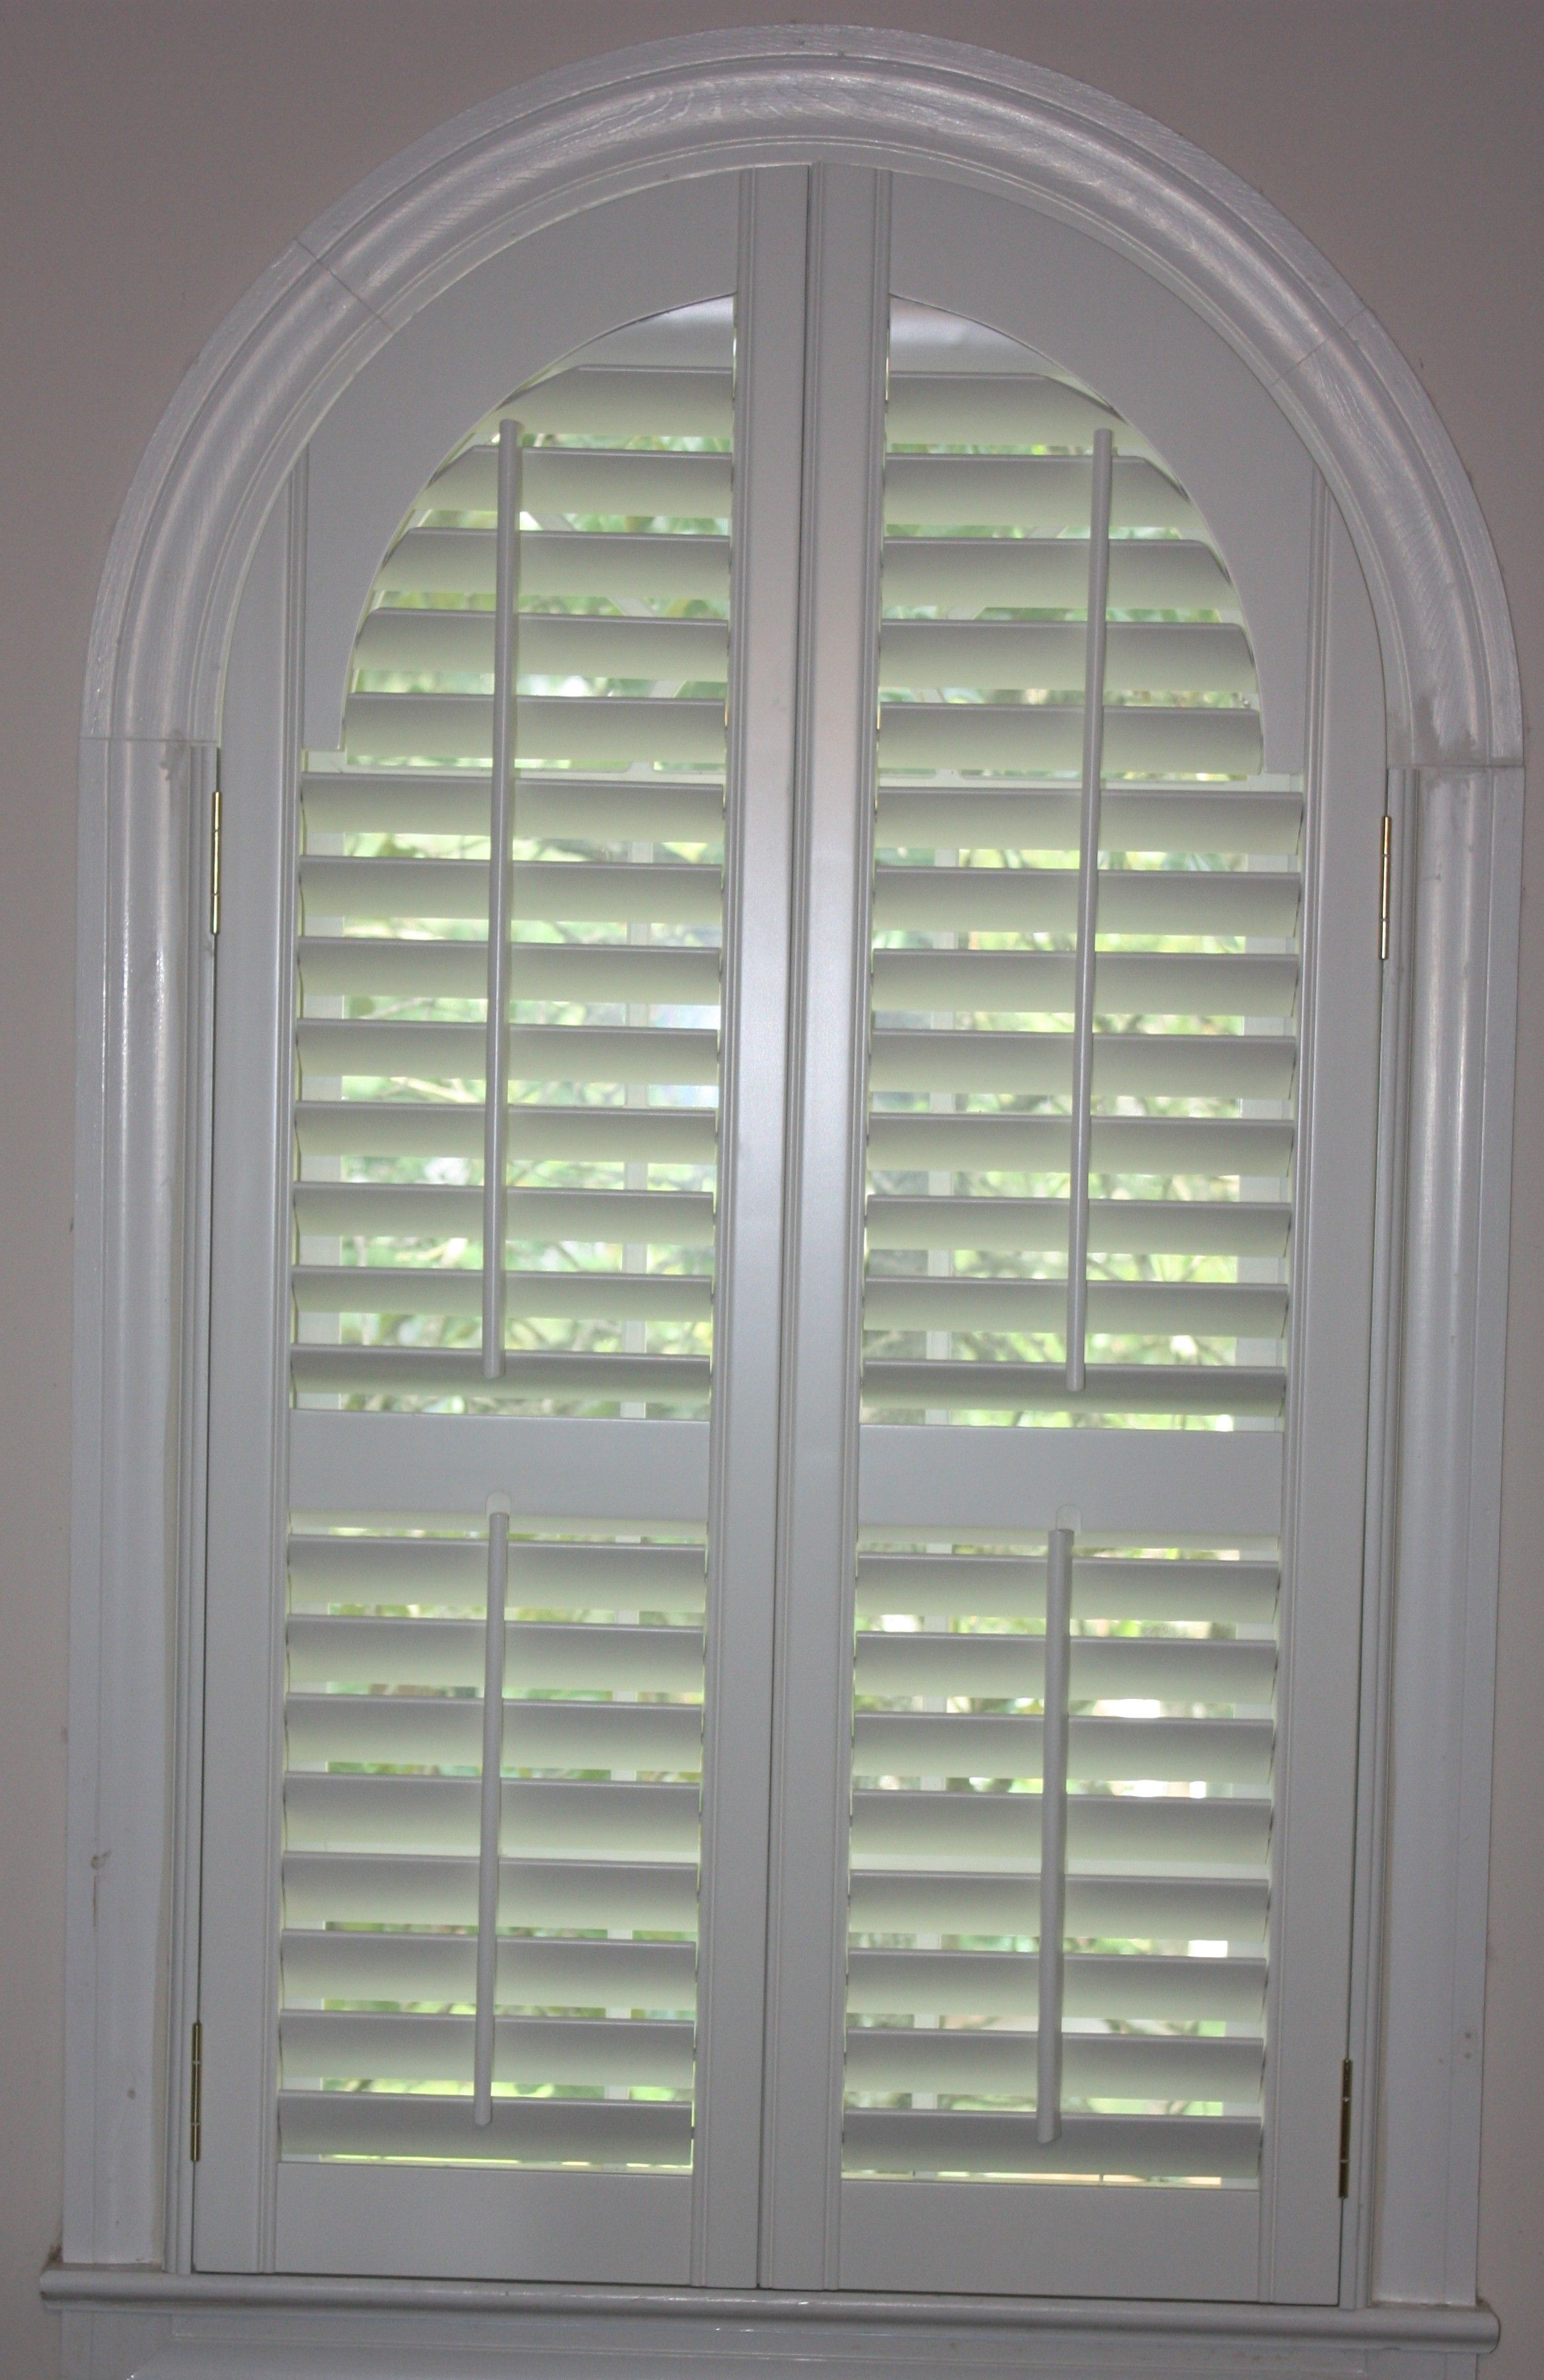 custom be or pictured utah blinds shutter here shutters pin covered fill as windows with typical opening the to portion can curved budget square on and entire